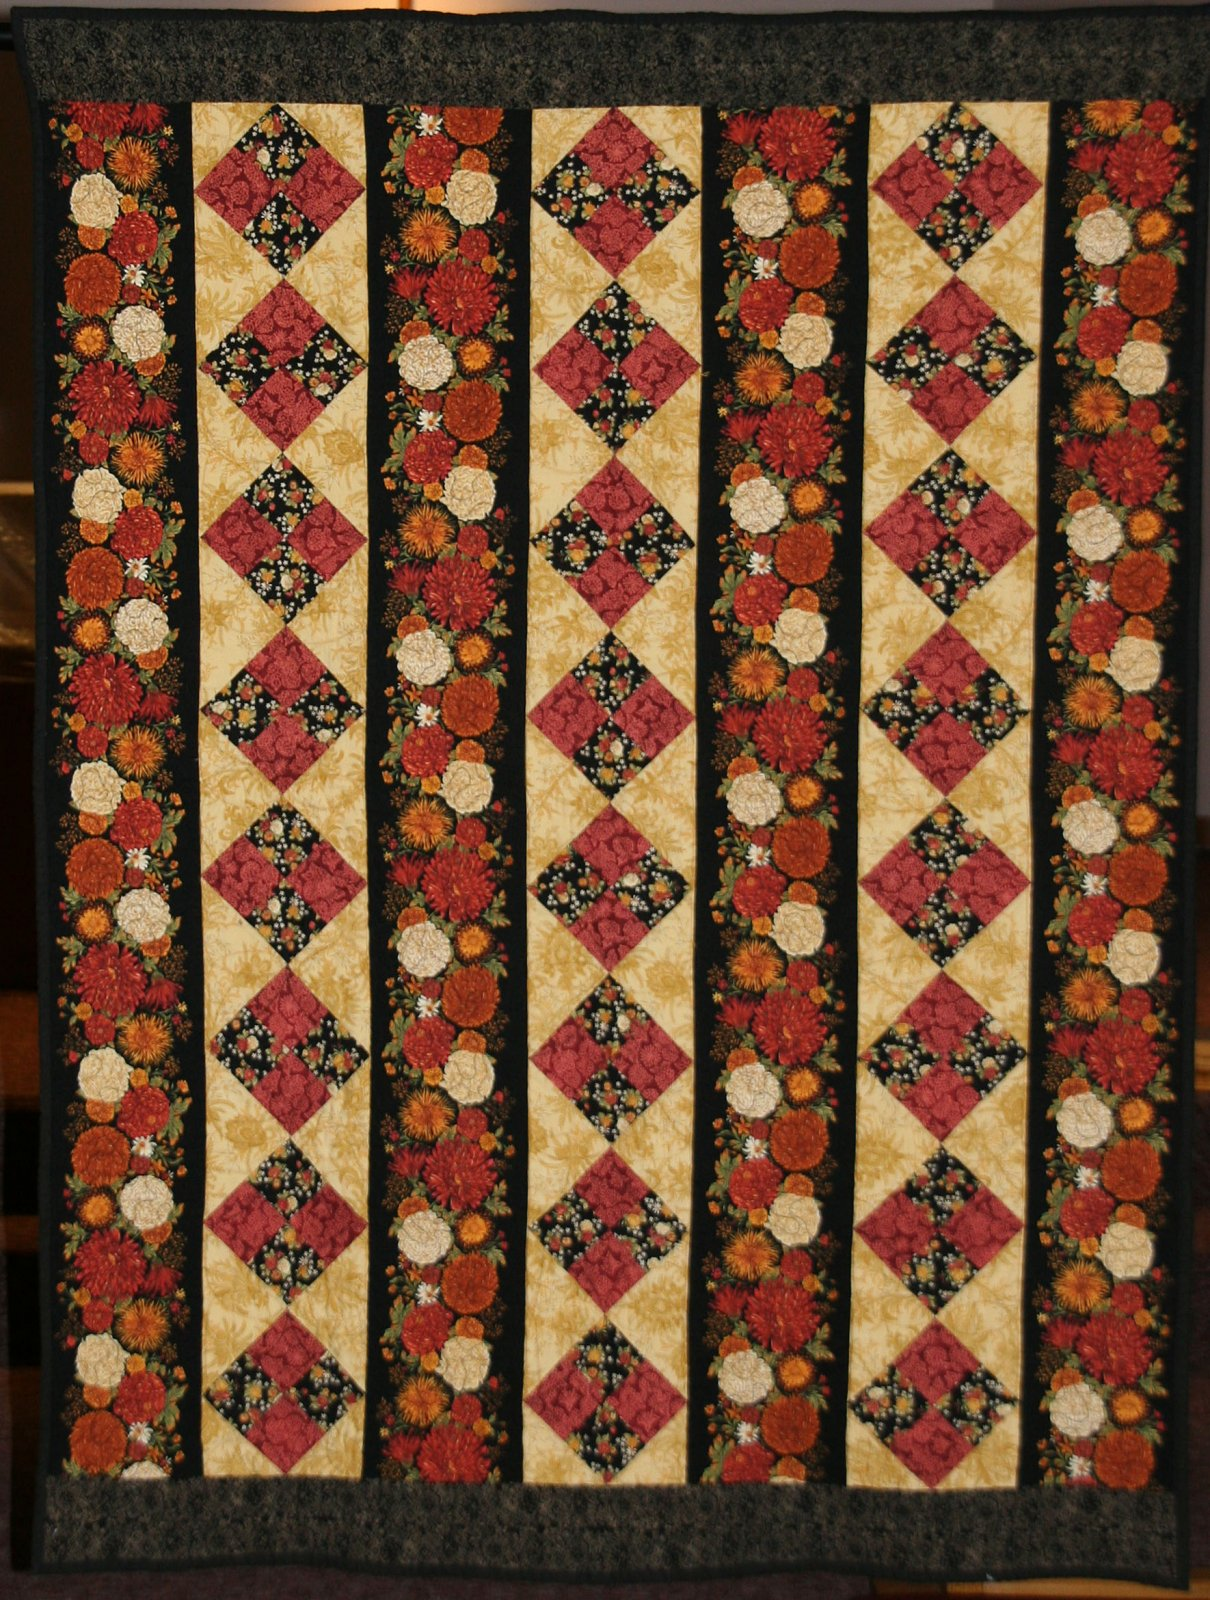 quilt my in collection quilts vintage and antique orange